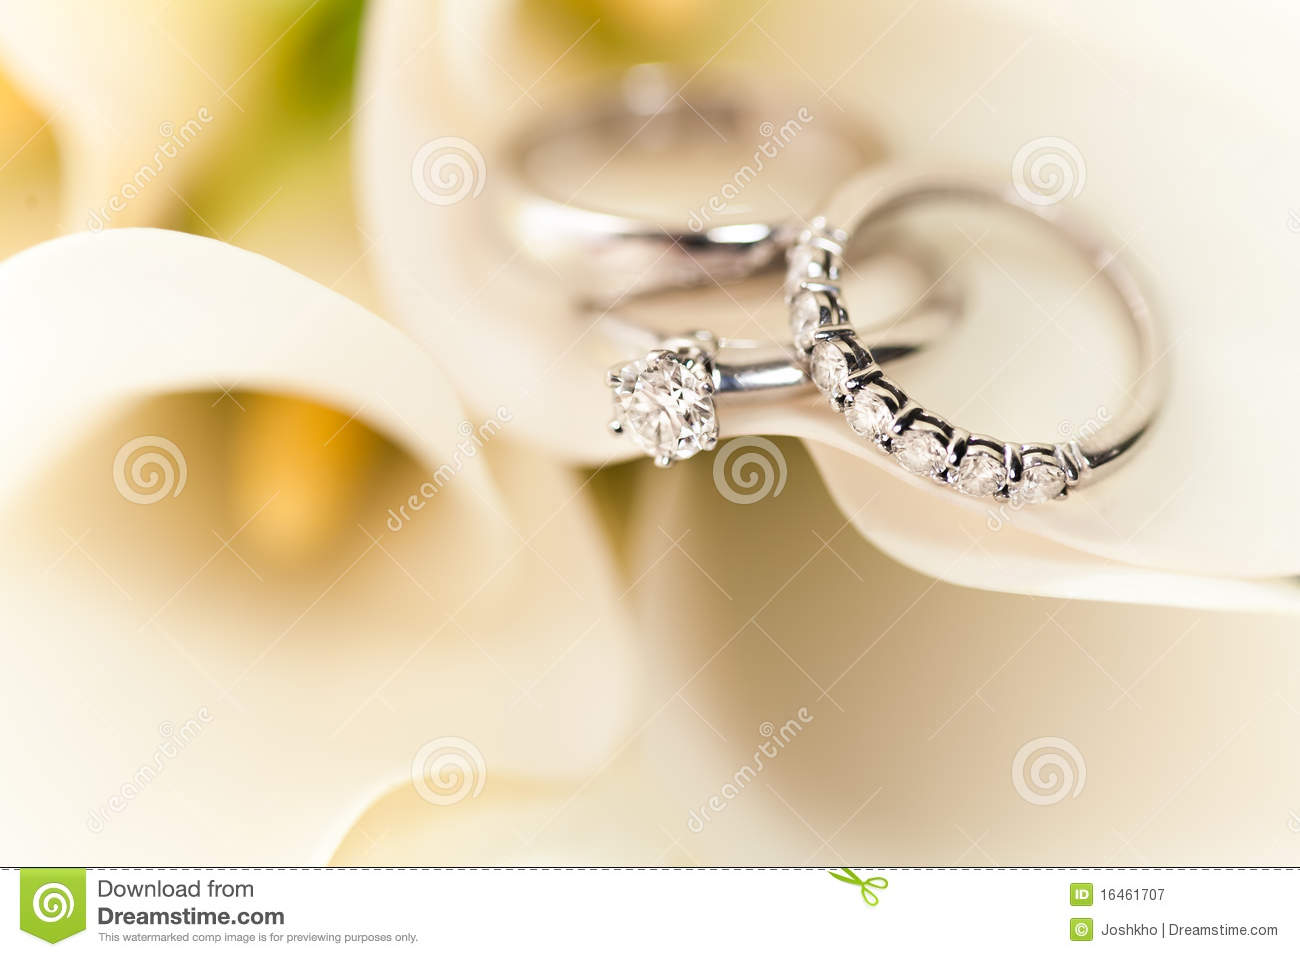 Wedding Rings With Flowers Royalty Free Stock Image Image 4643026